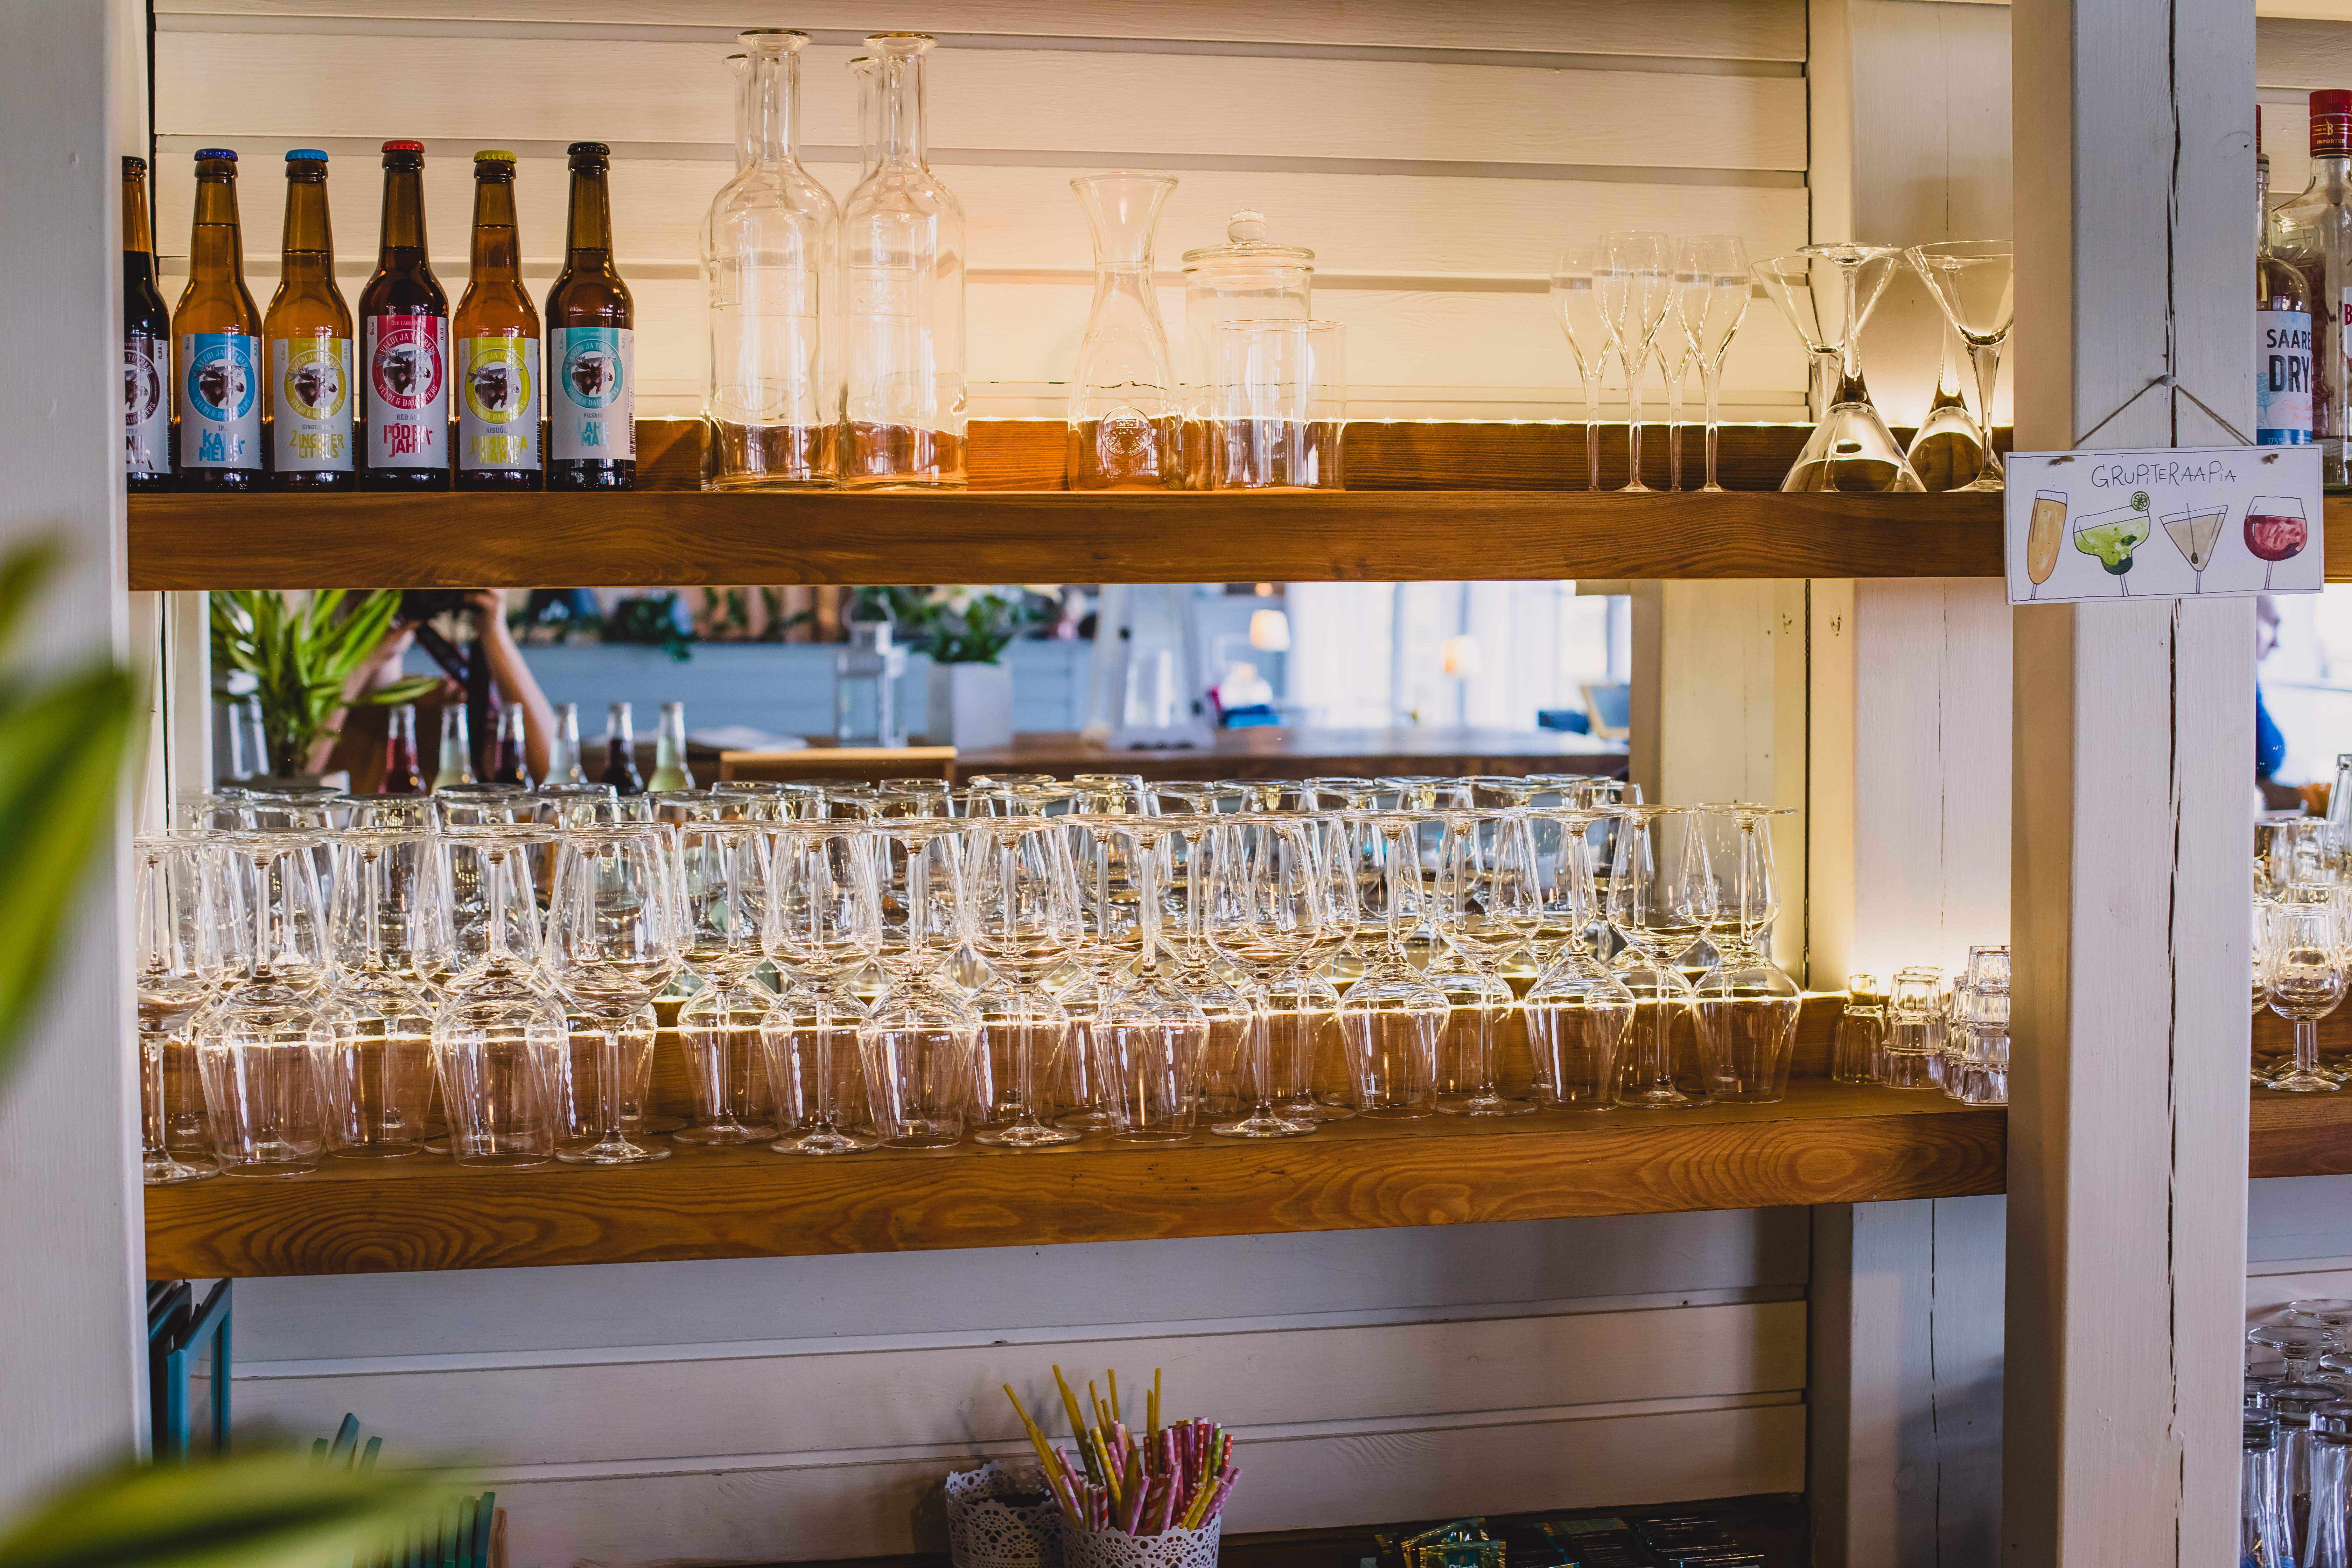 Clear Drinking Glass Collection on Shelf